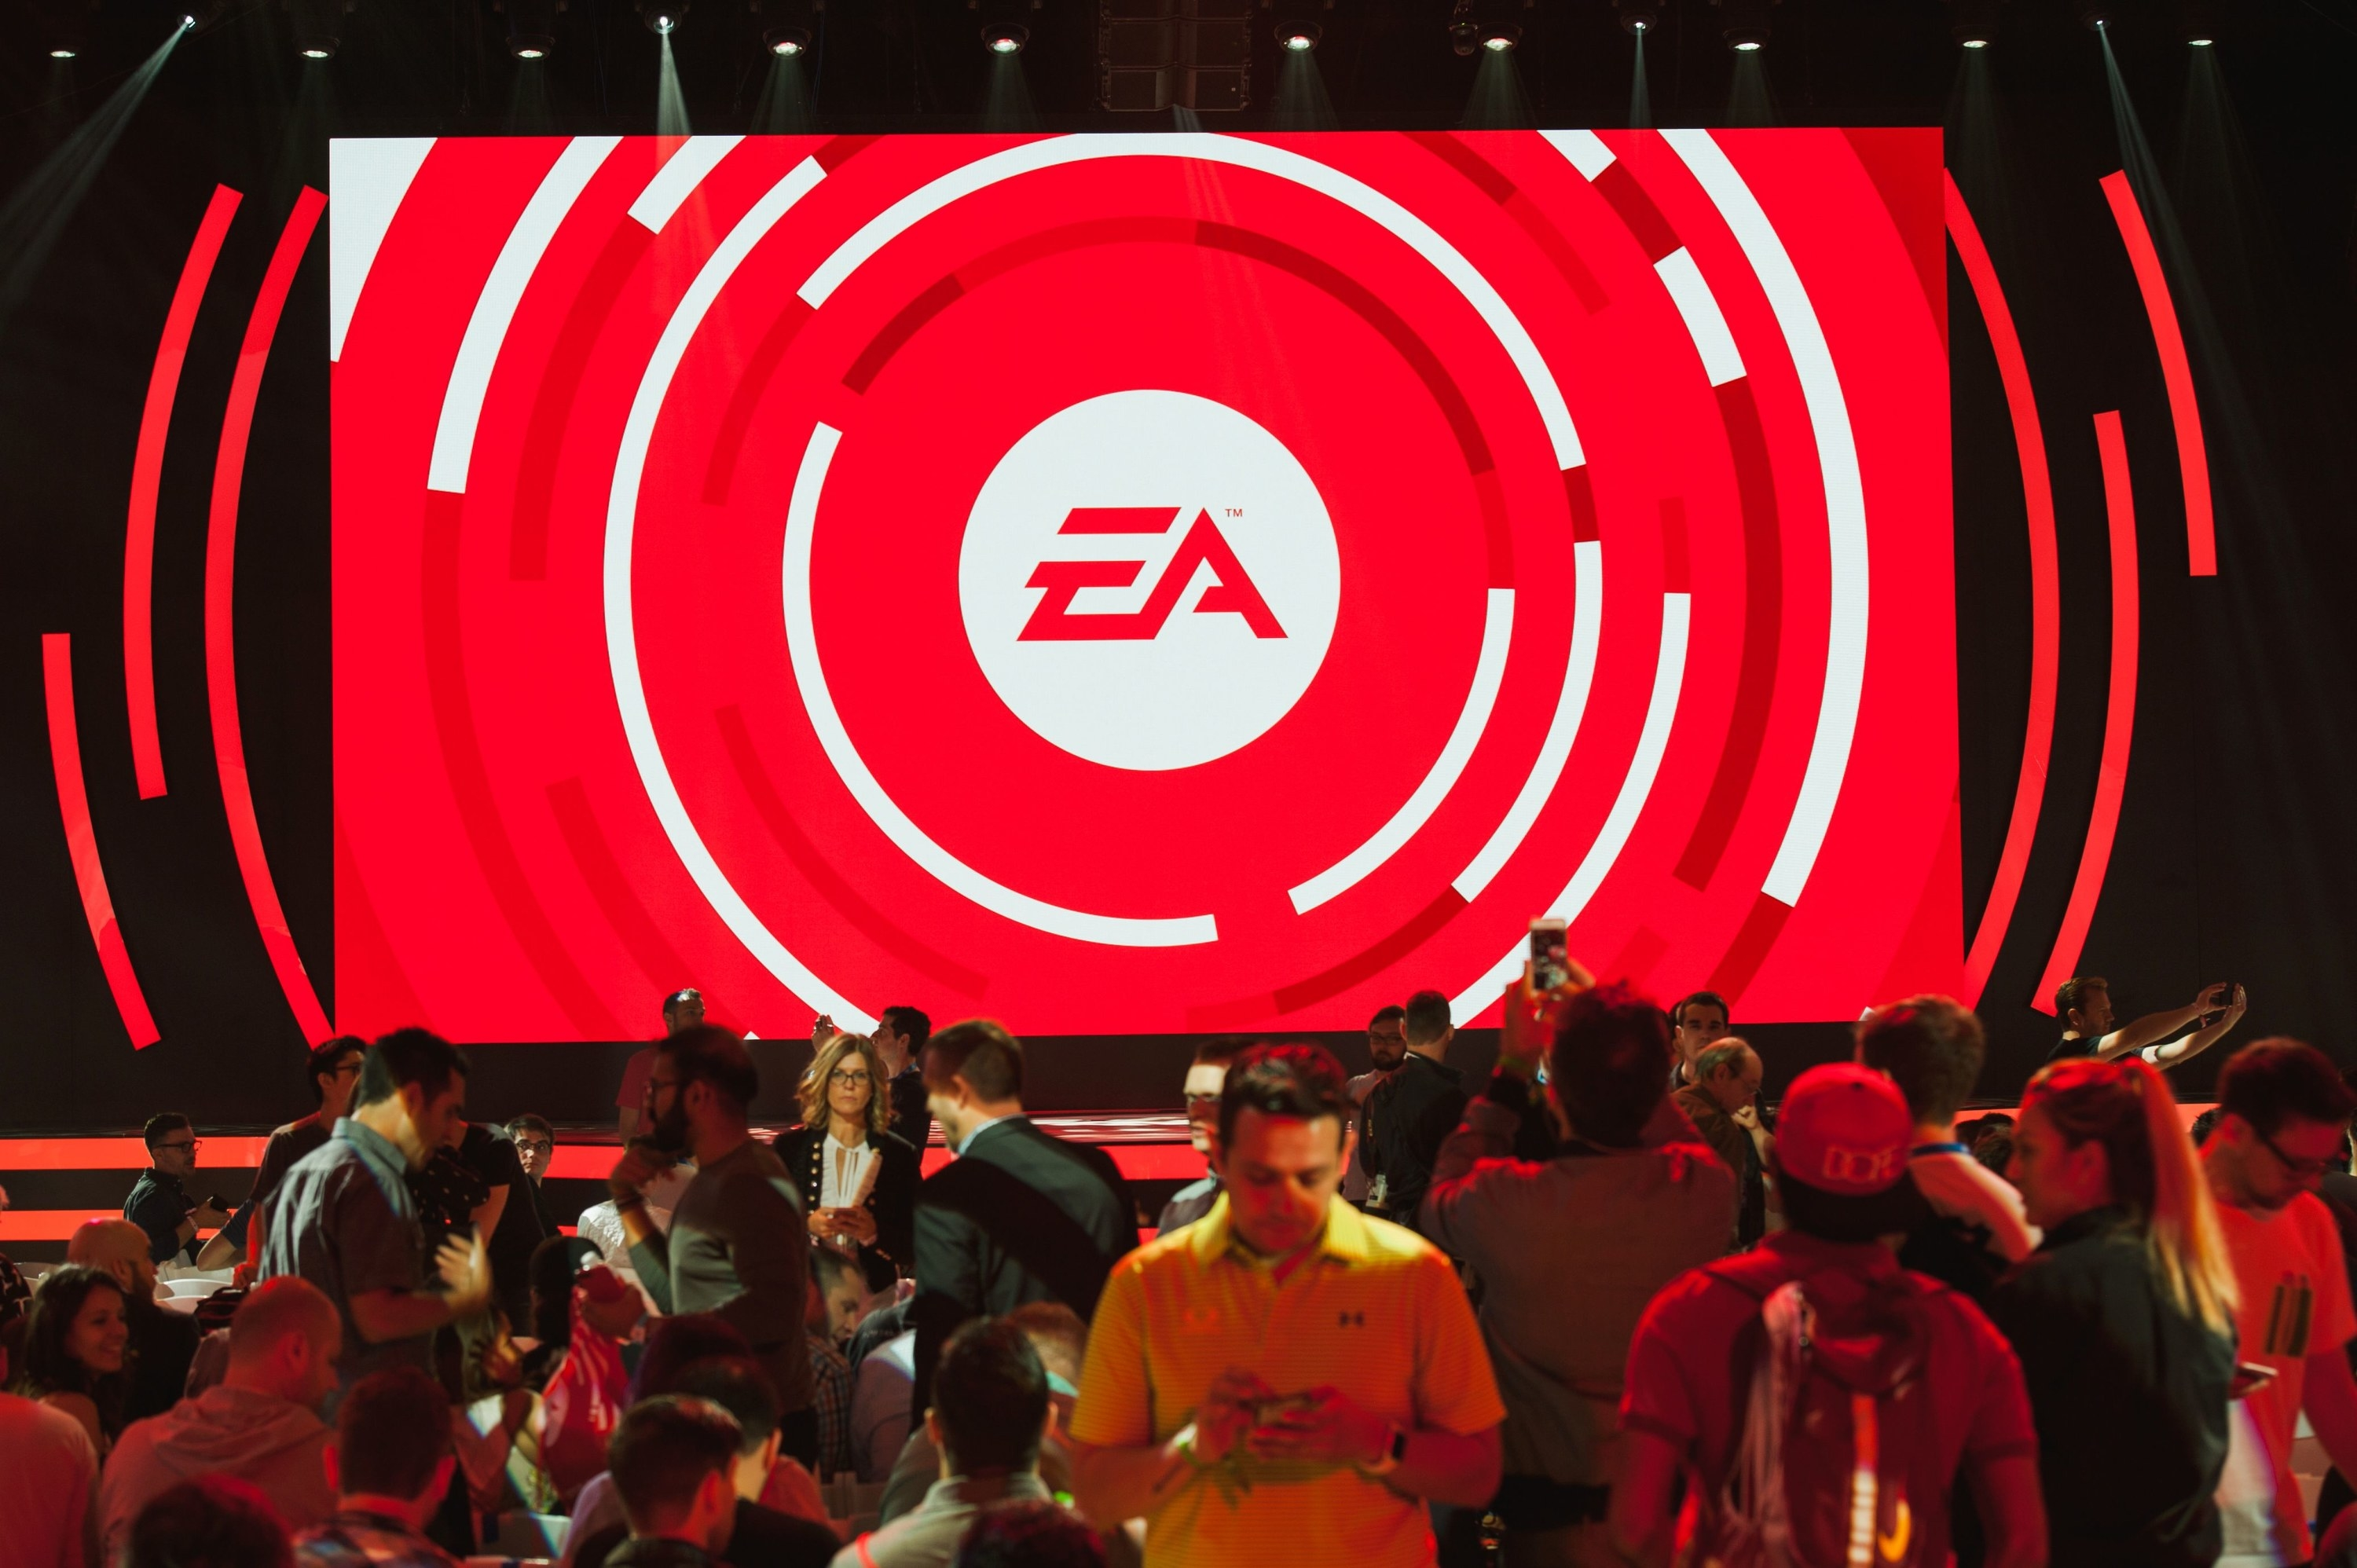 People attending an EA conference at the Hollywood Palladium with the EA logo on a large screen